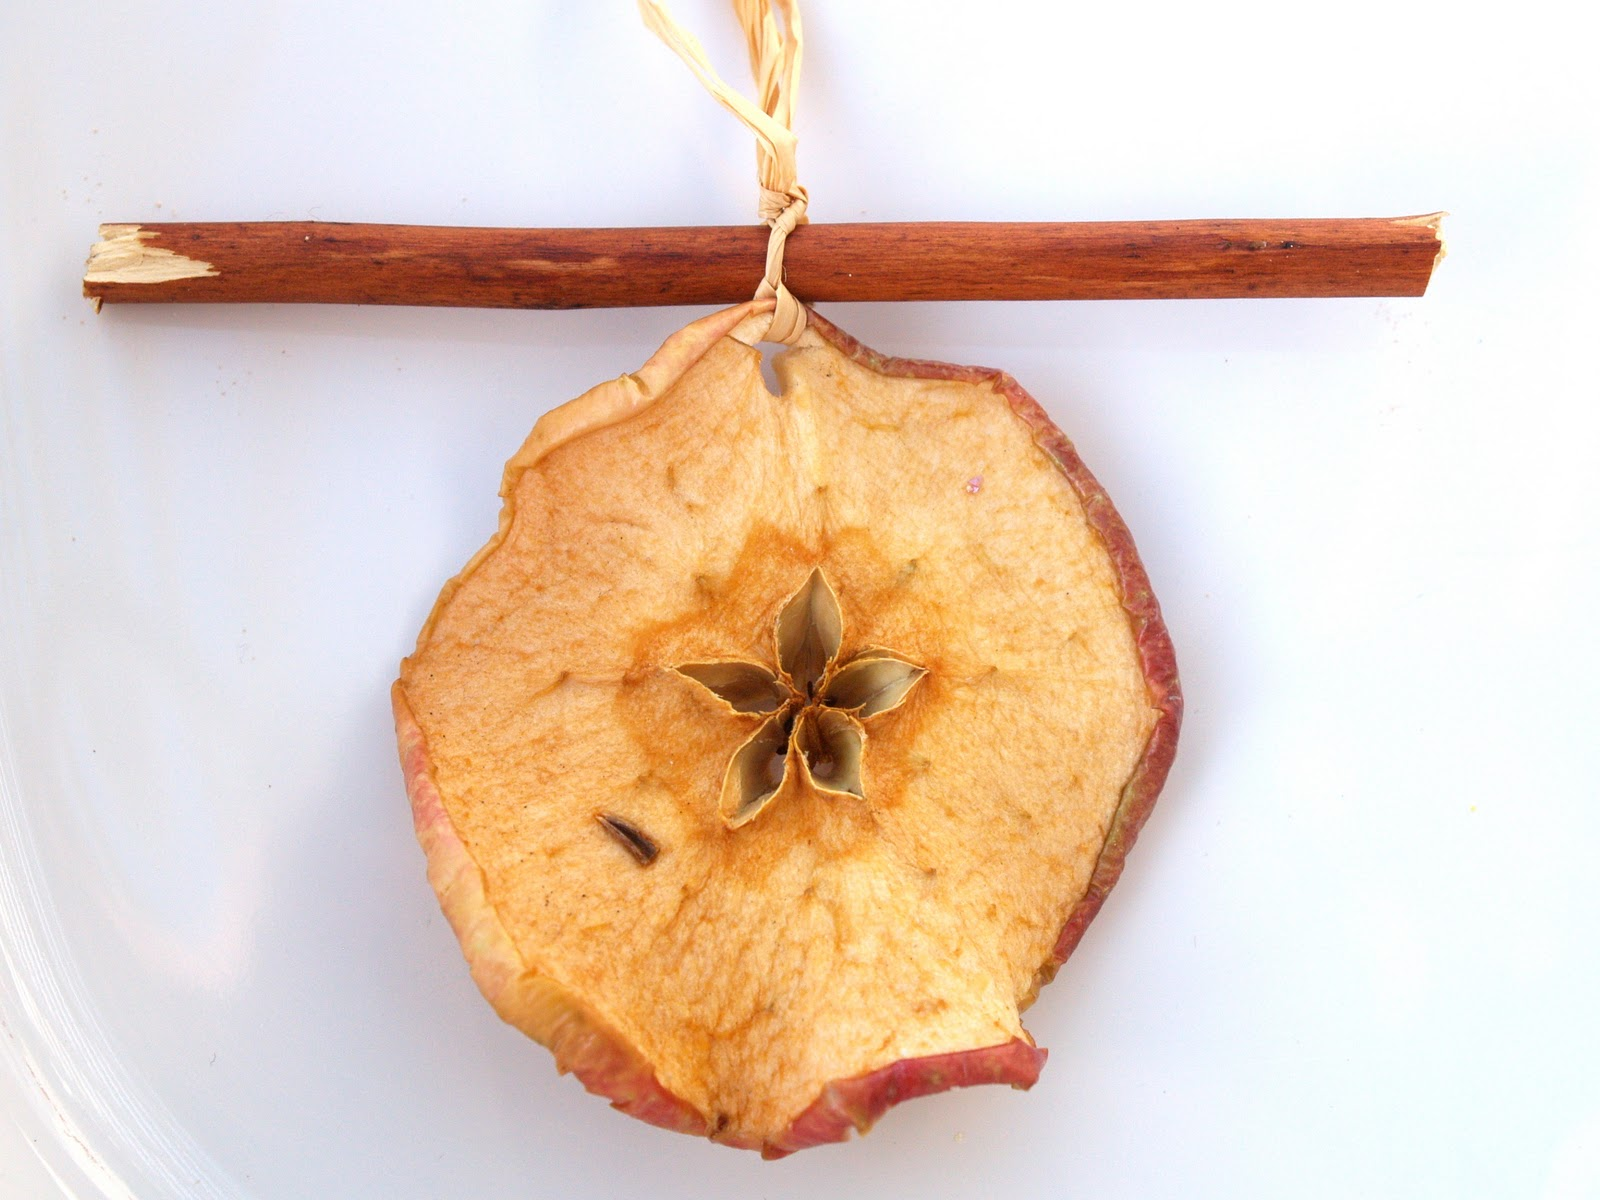 Drying Out Oranges Christmas Decorations Handmade Christmas Ornaments Dried Apples And Cinnamon The